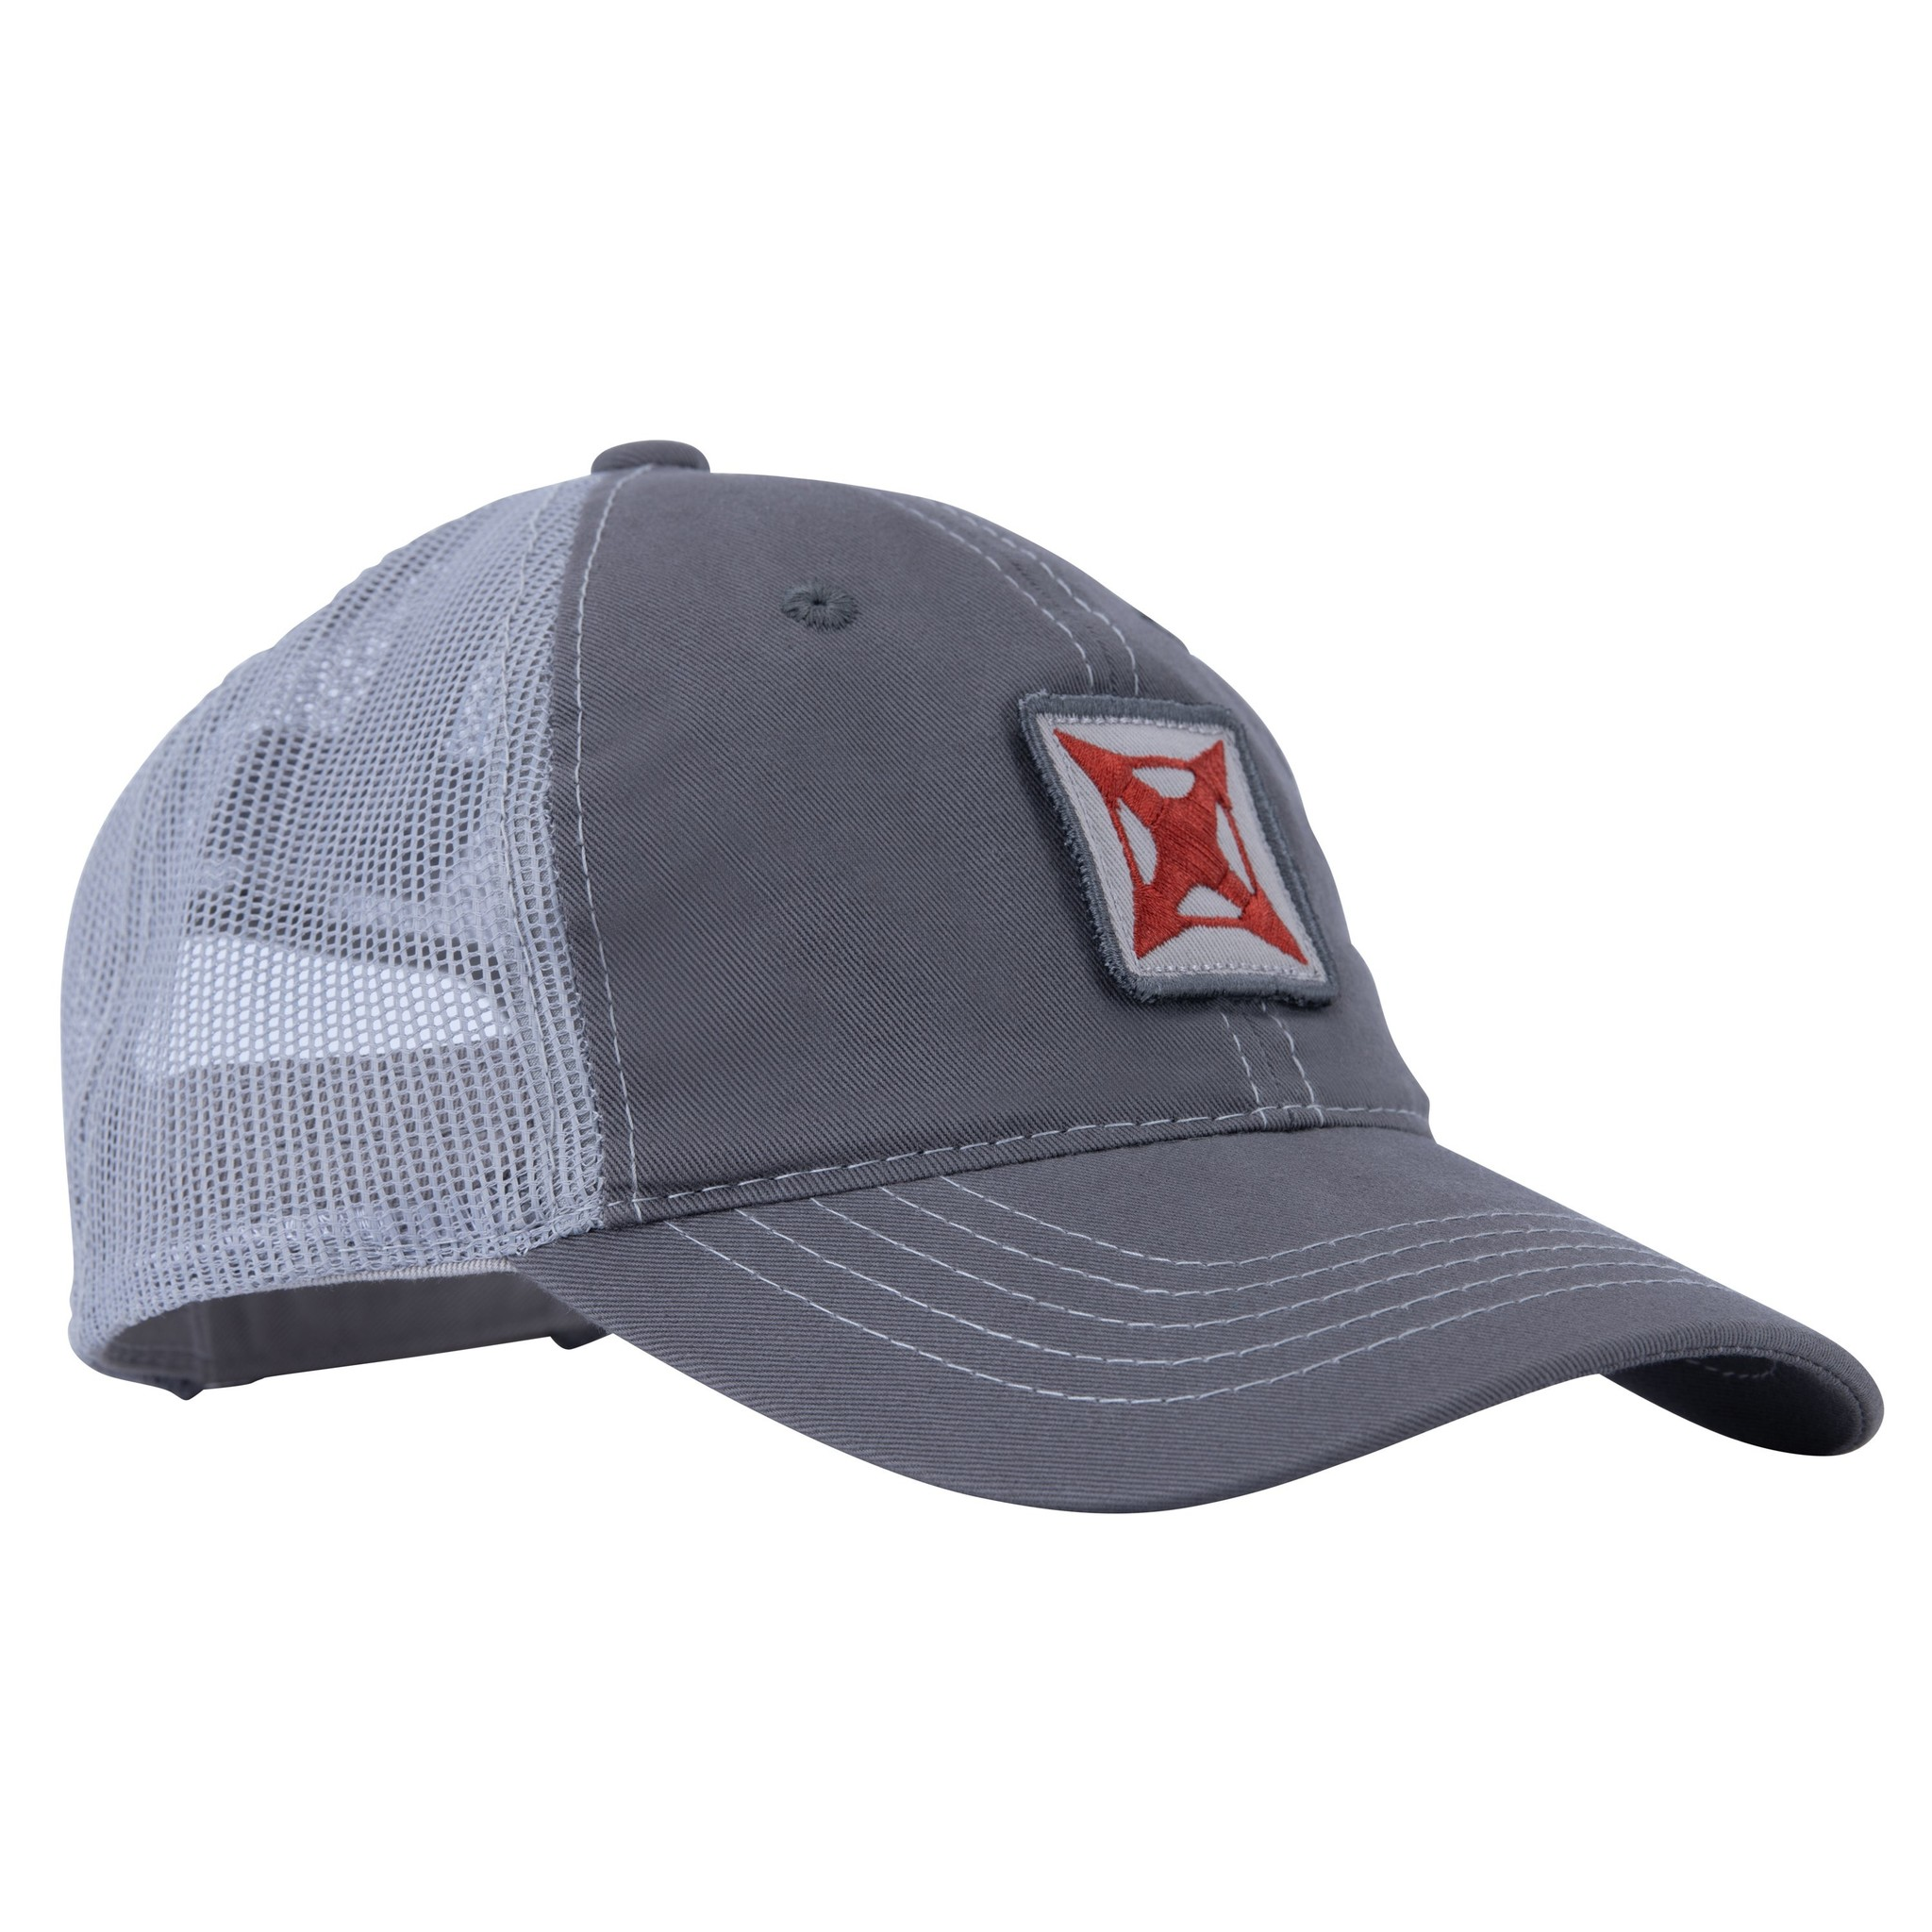 Vertx Vertx Cap with Red Shuriken